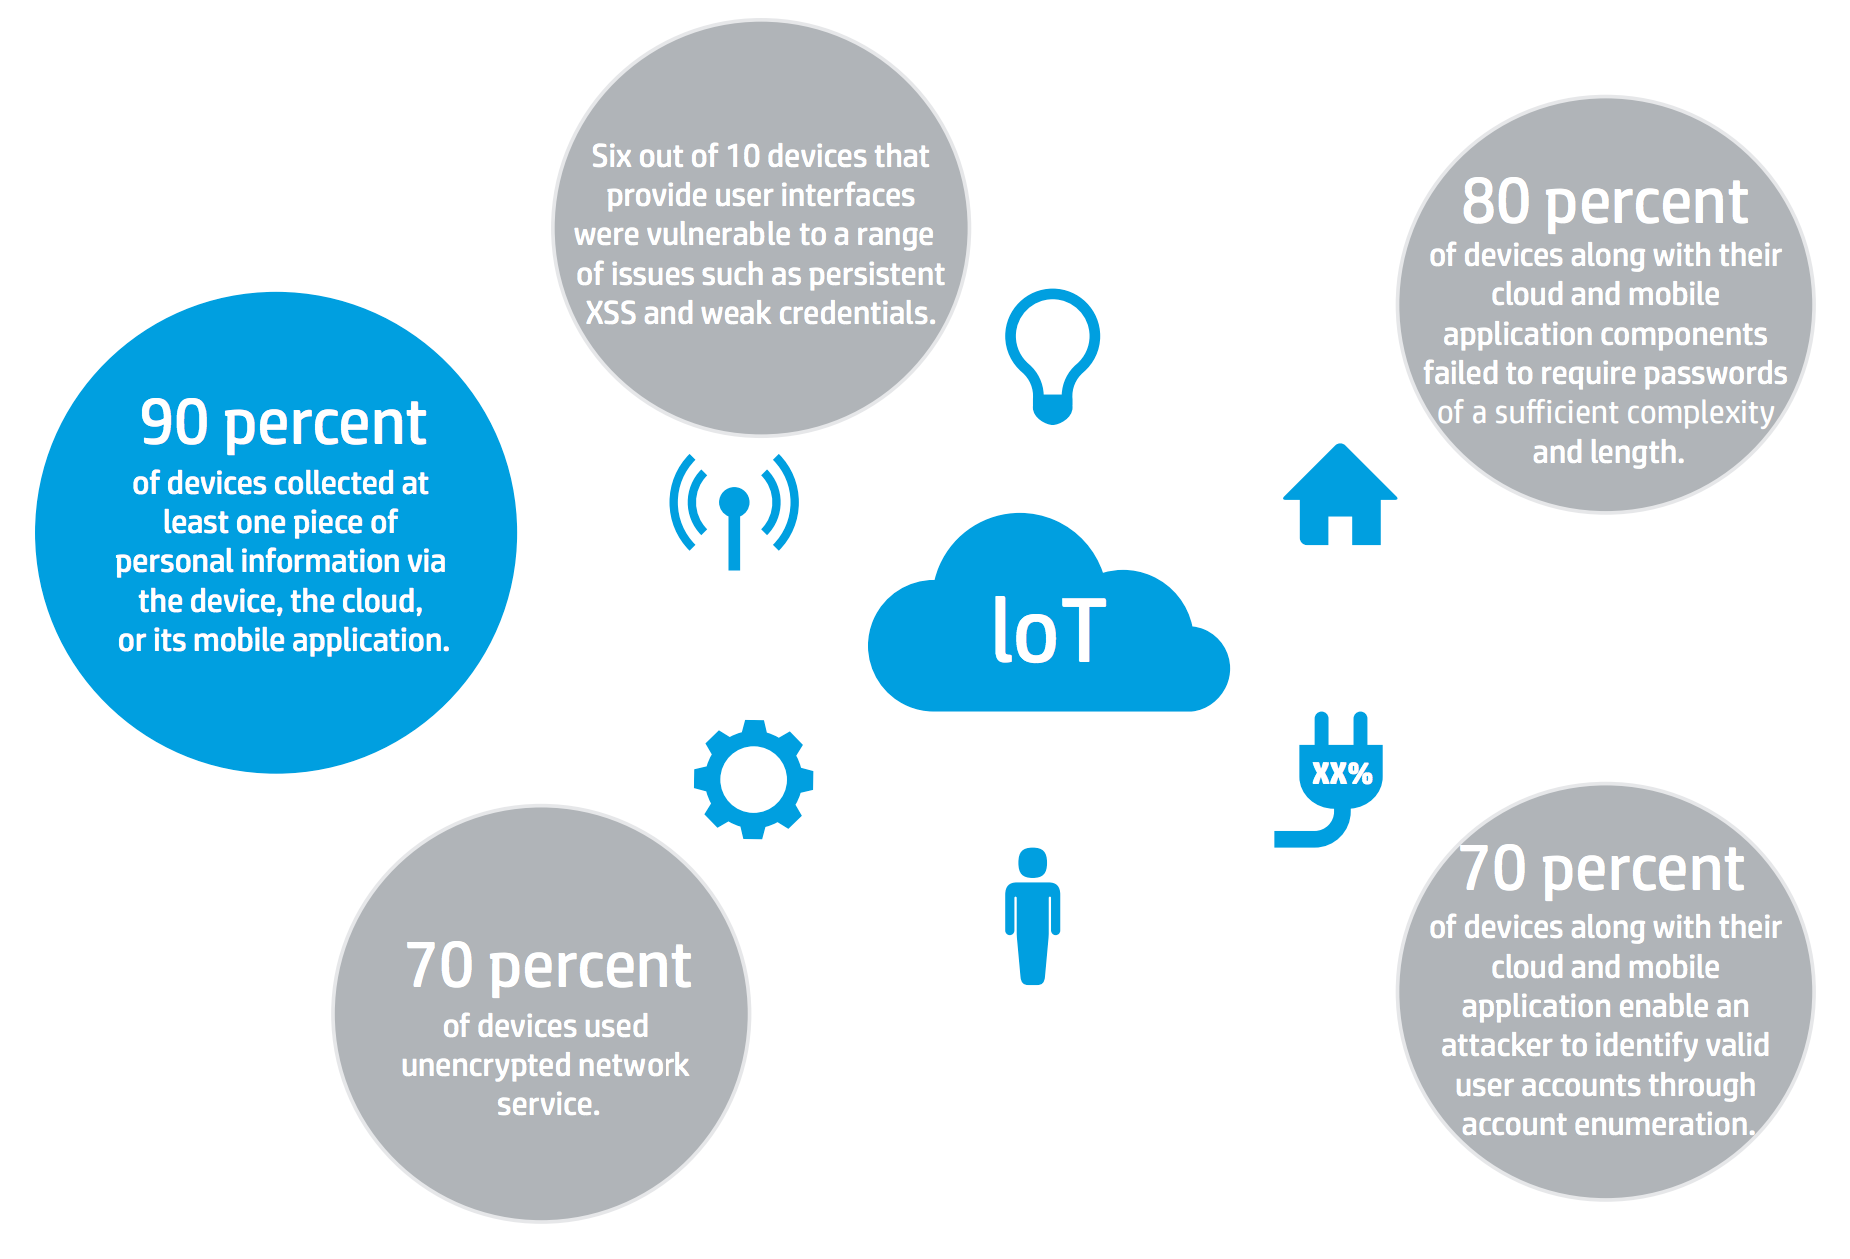 HP IoT security study found vulnerabilities